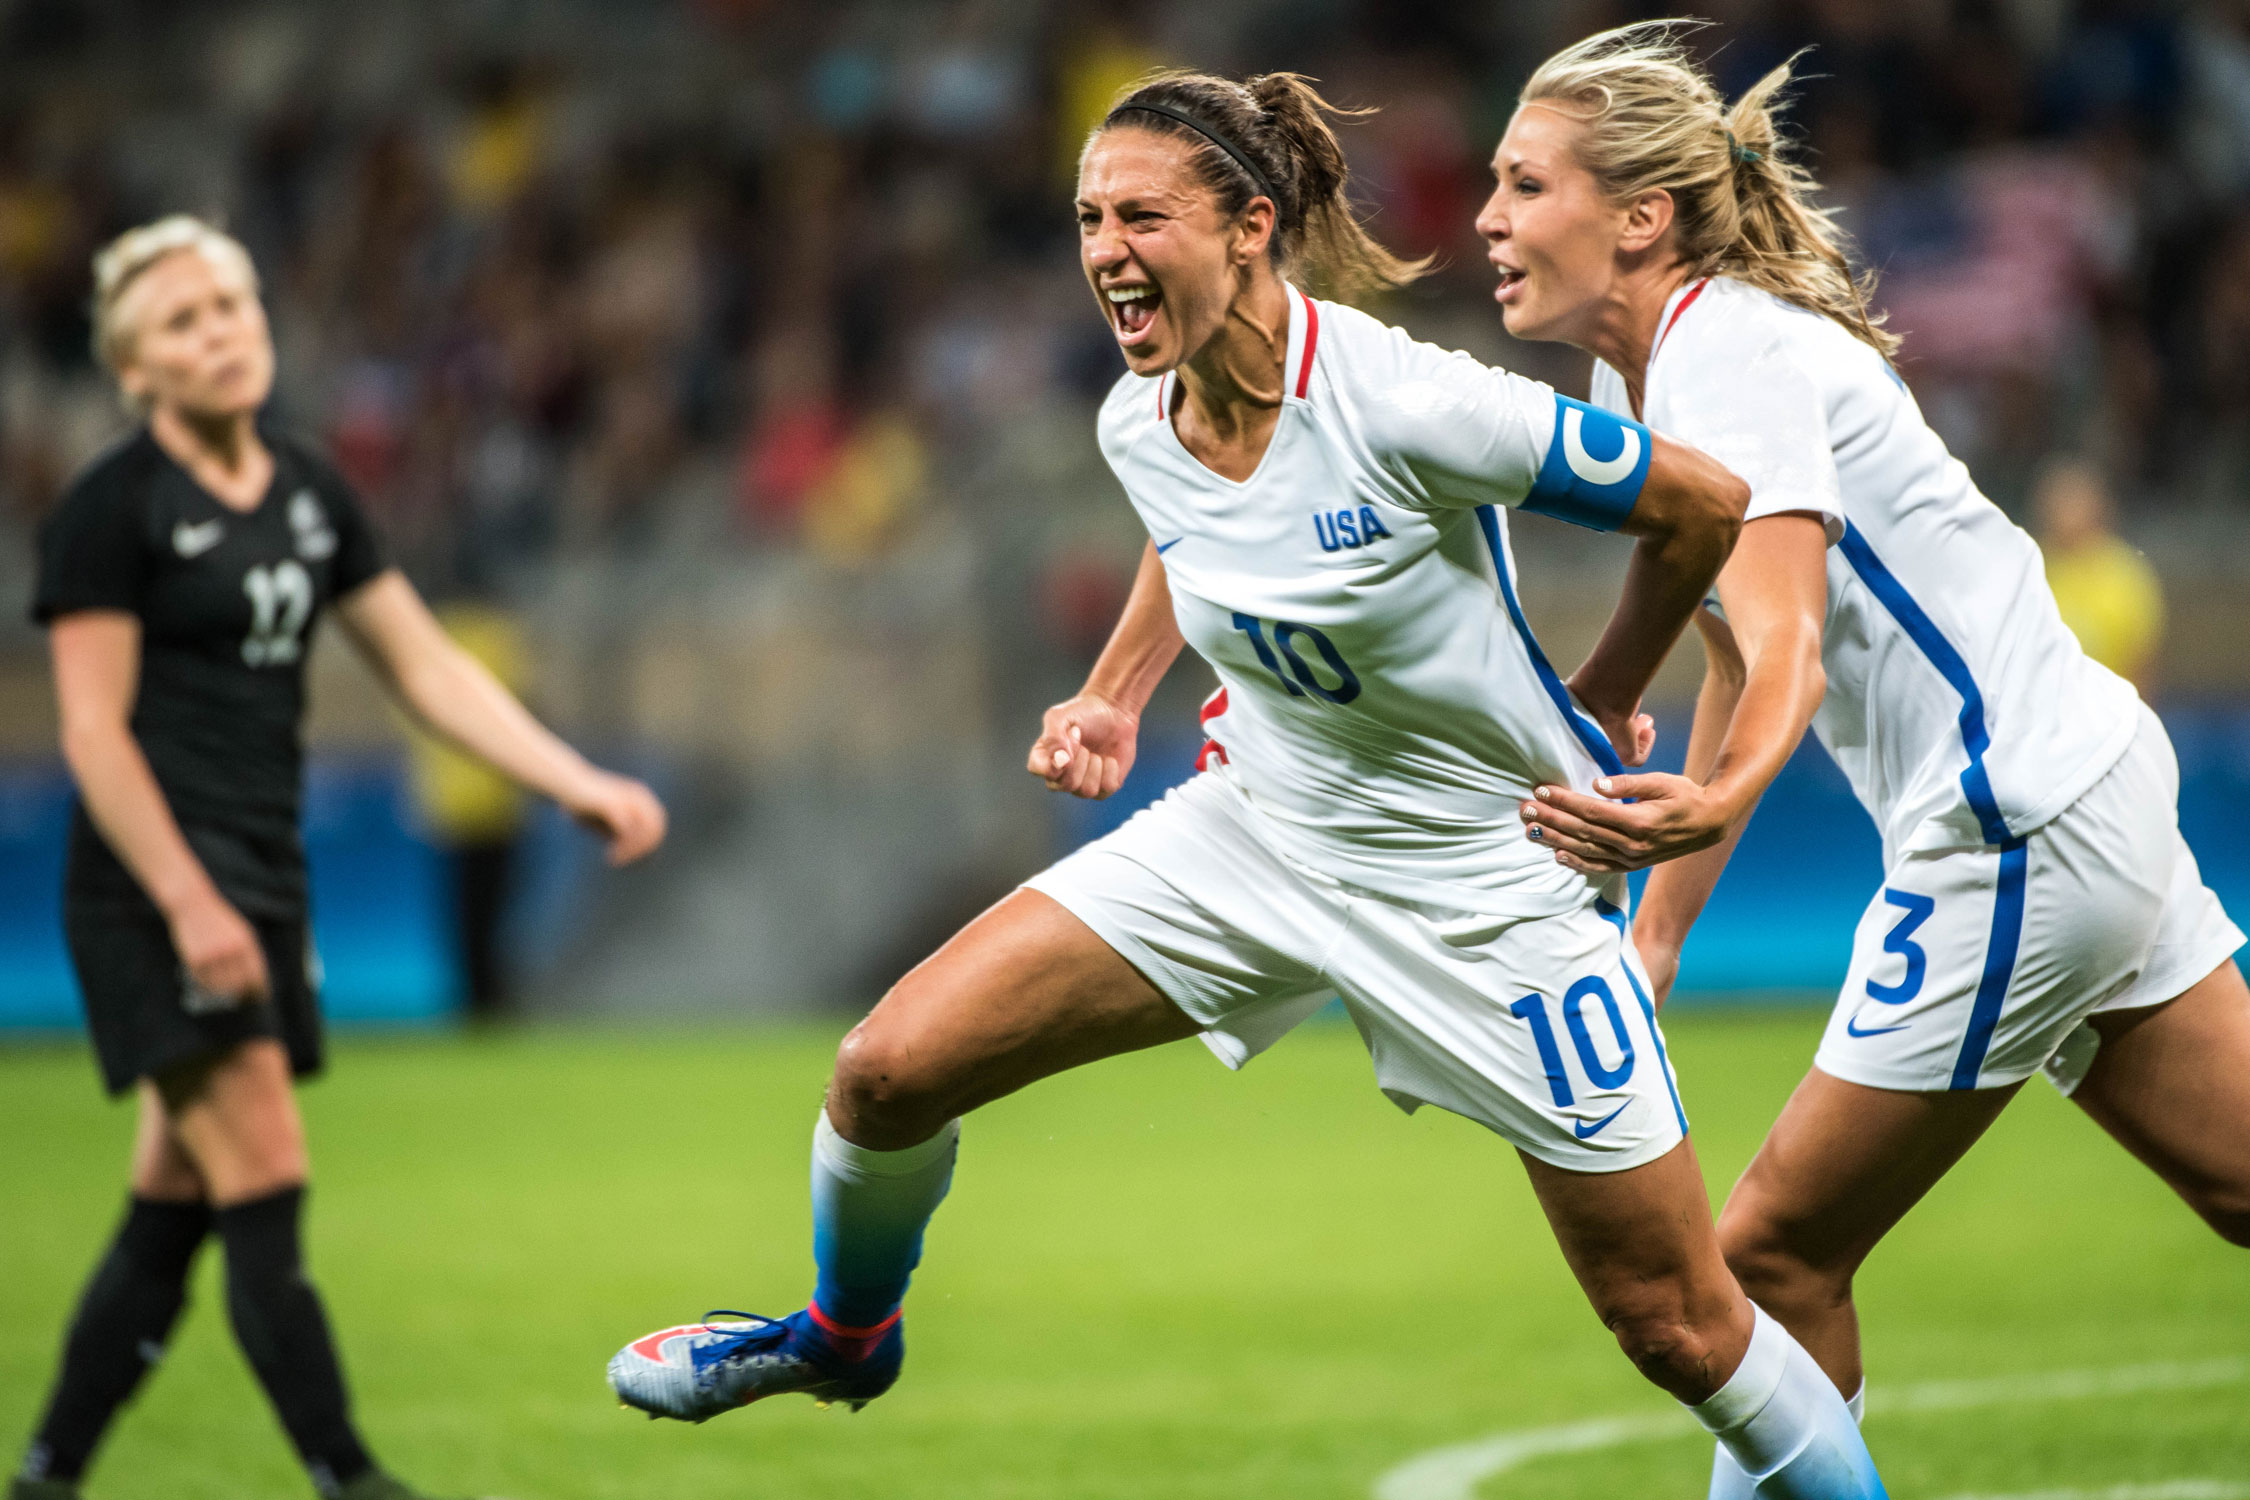 Carli Lloyd celebrates her goal in the USA's 2-0 win over New Zealand in their opening match of group play at the Olympics. Alex Morgan scored the USA's second goal.